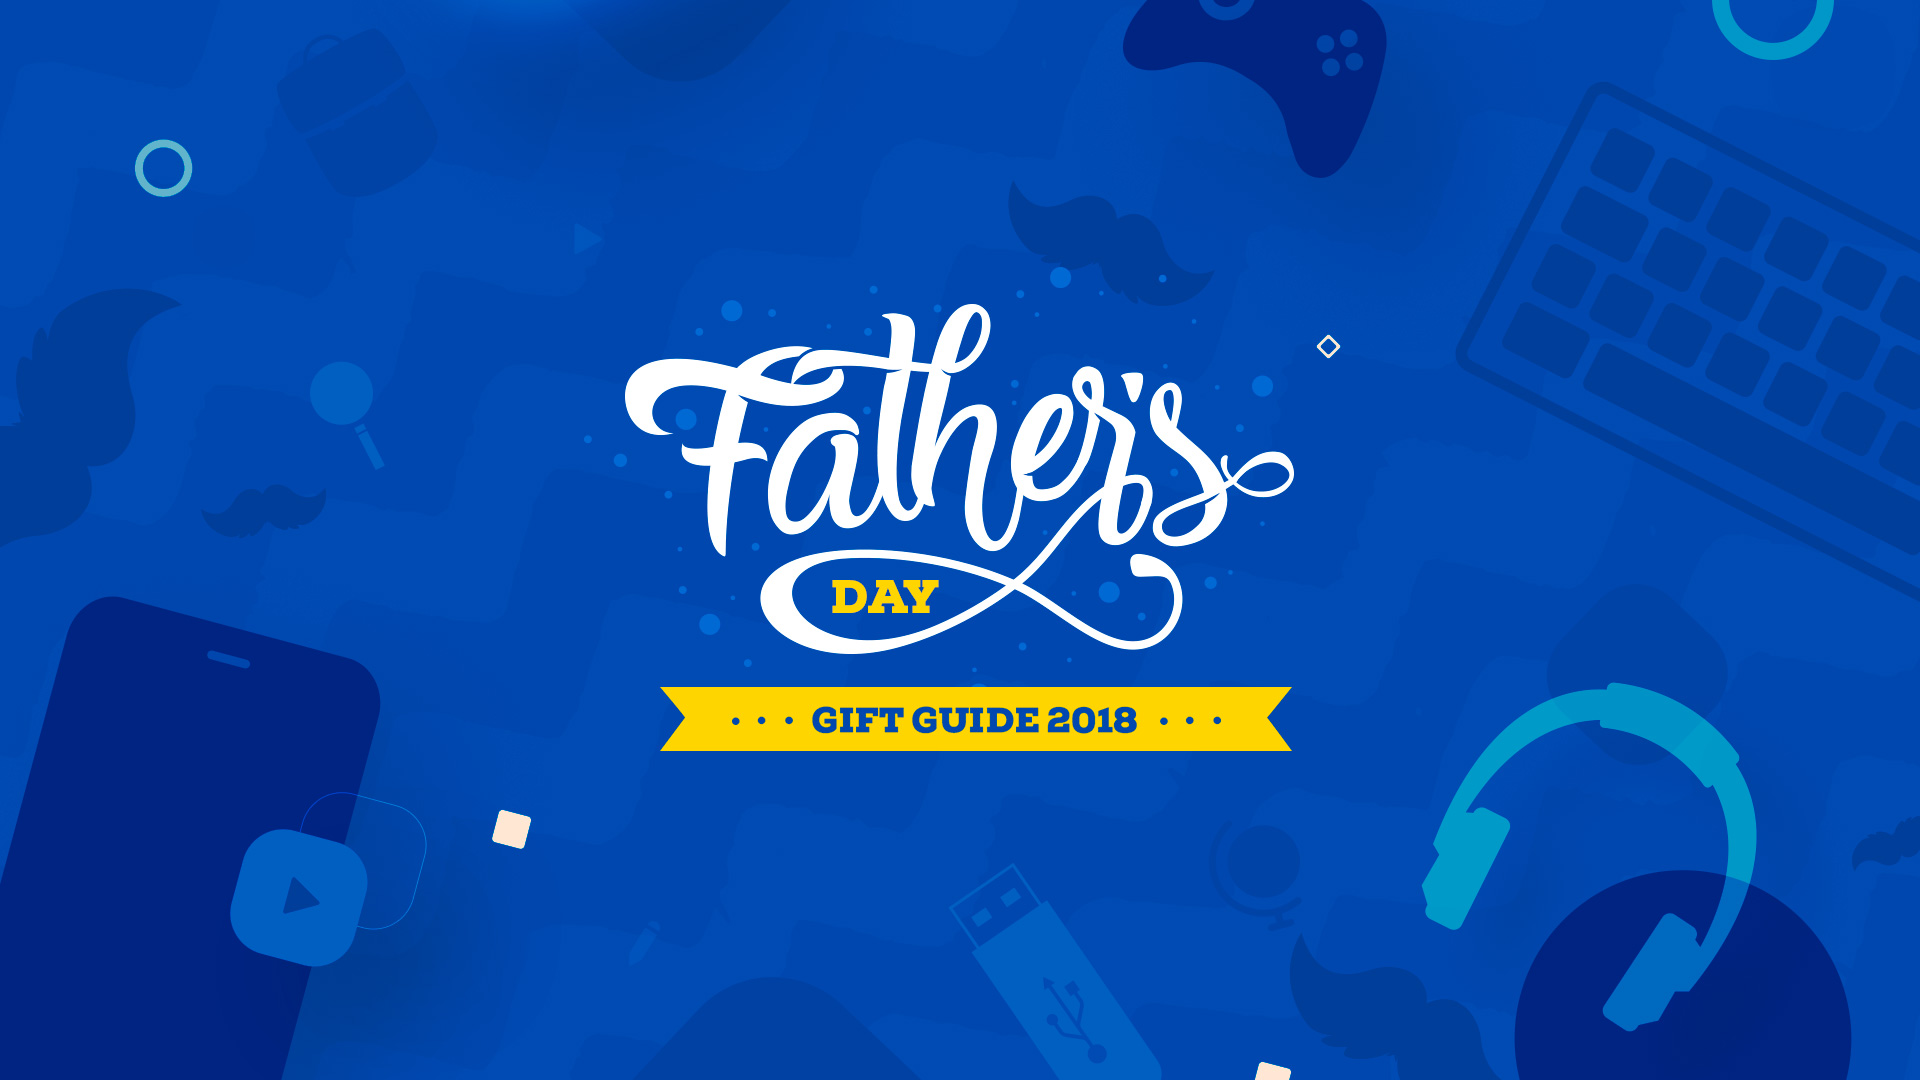 fathers-day.jpg?itok=fKnLVlv8